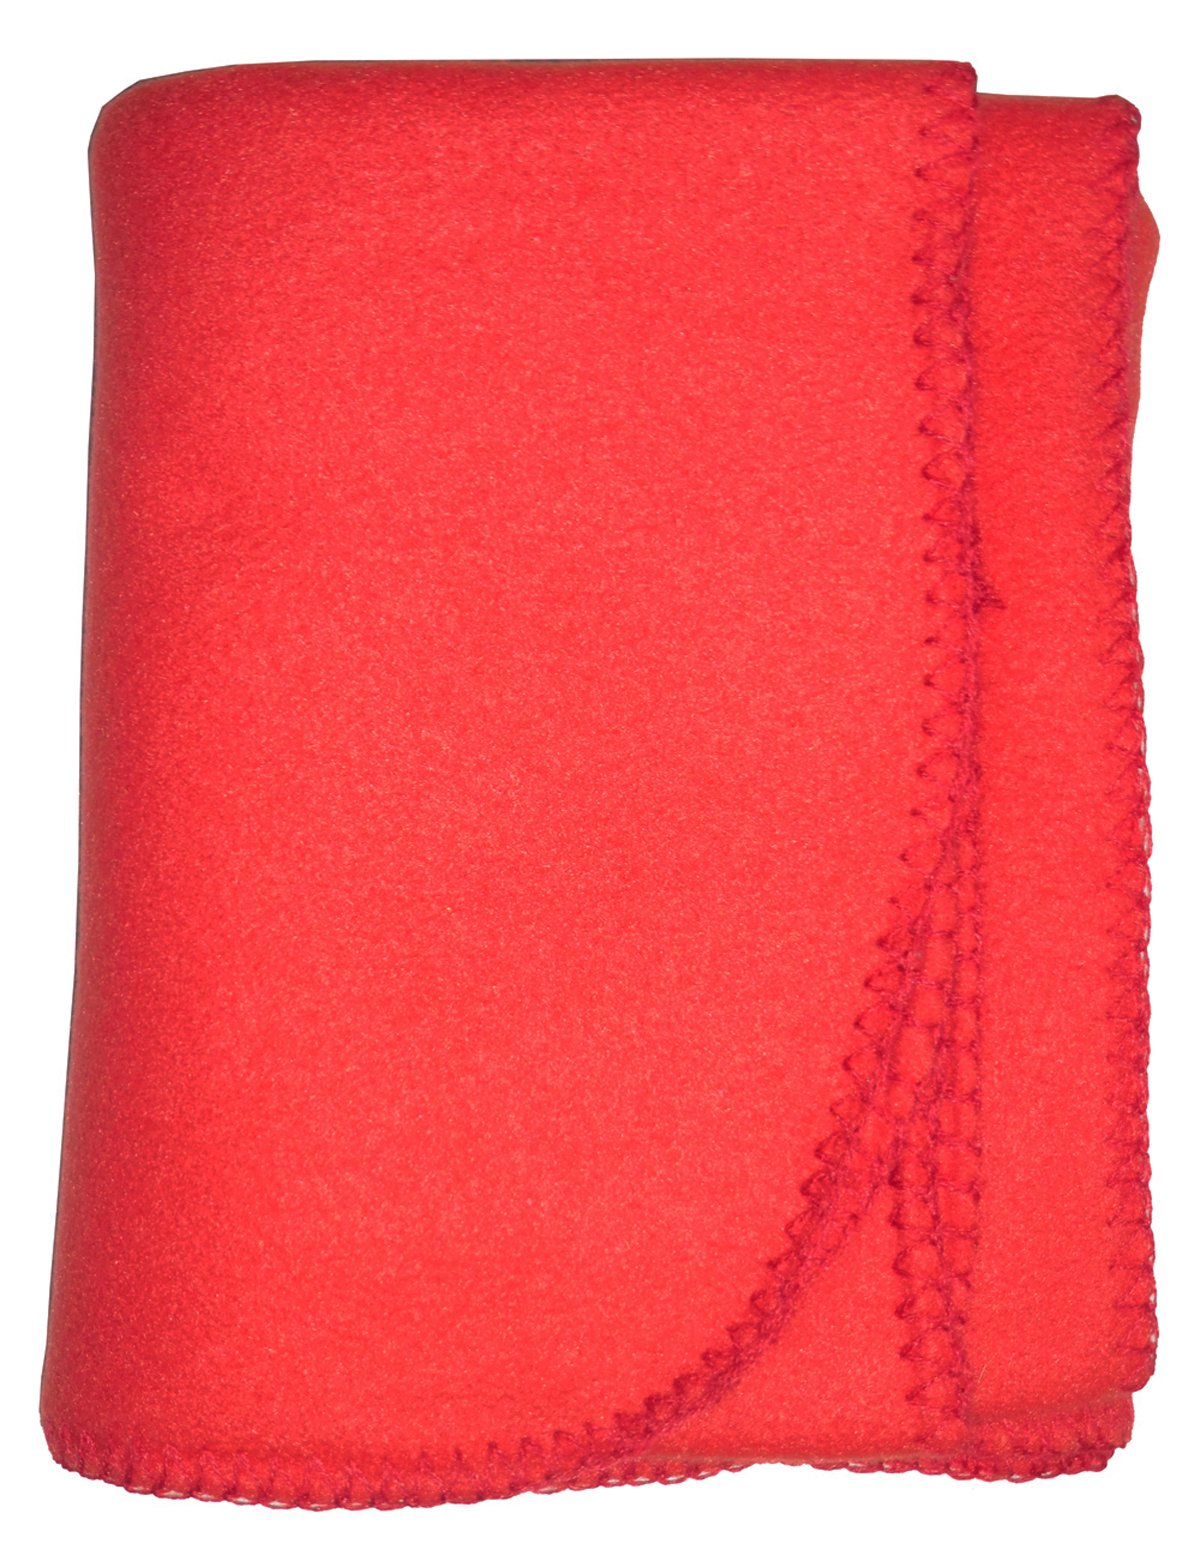 Bambini Blank Red Polarfleece Blanket - Baby World Inc